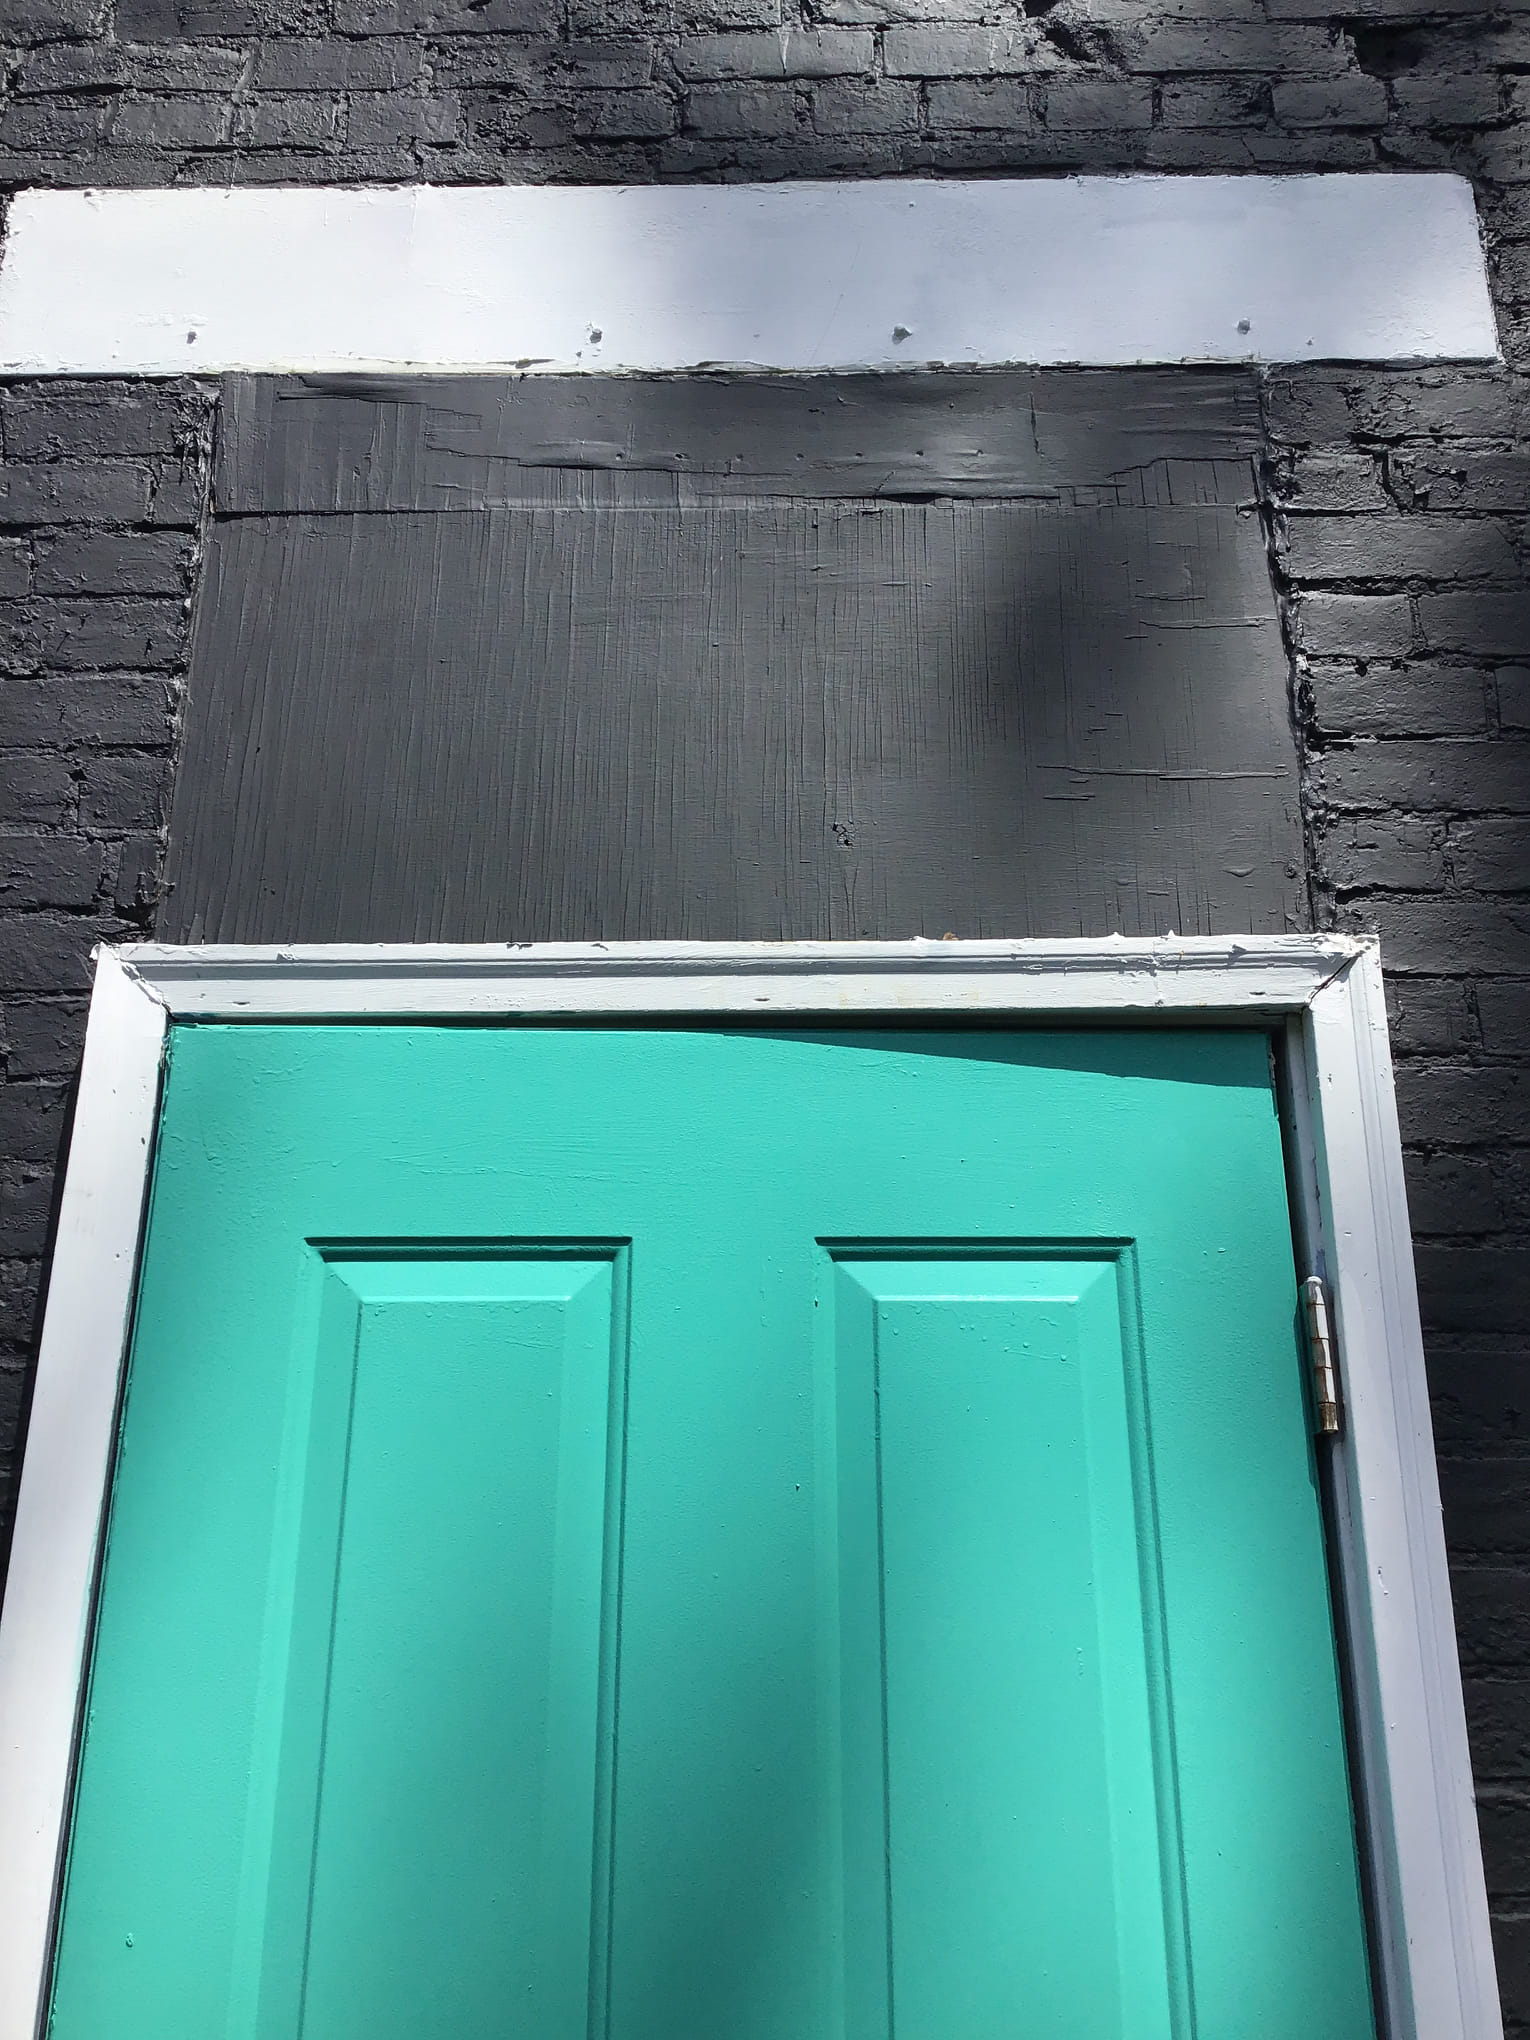 Entry Doors and Transom Windows